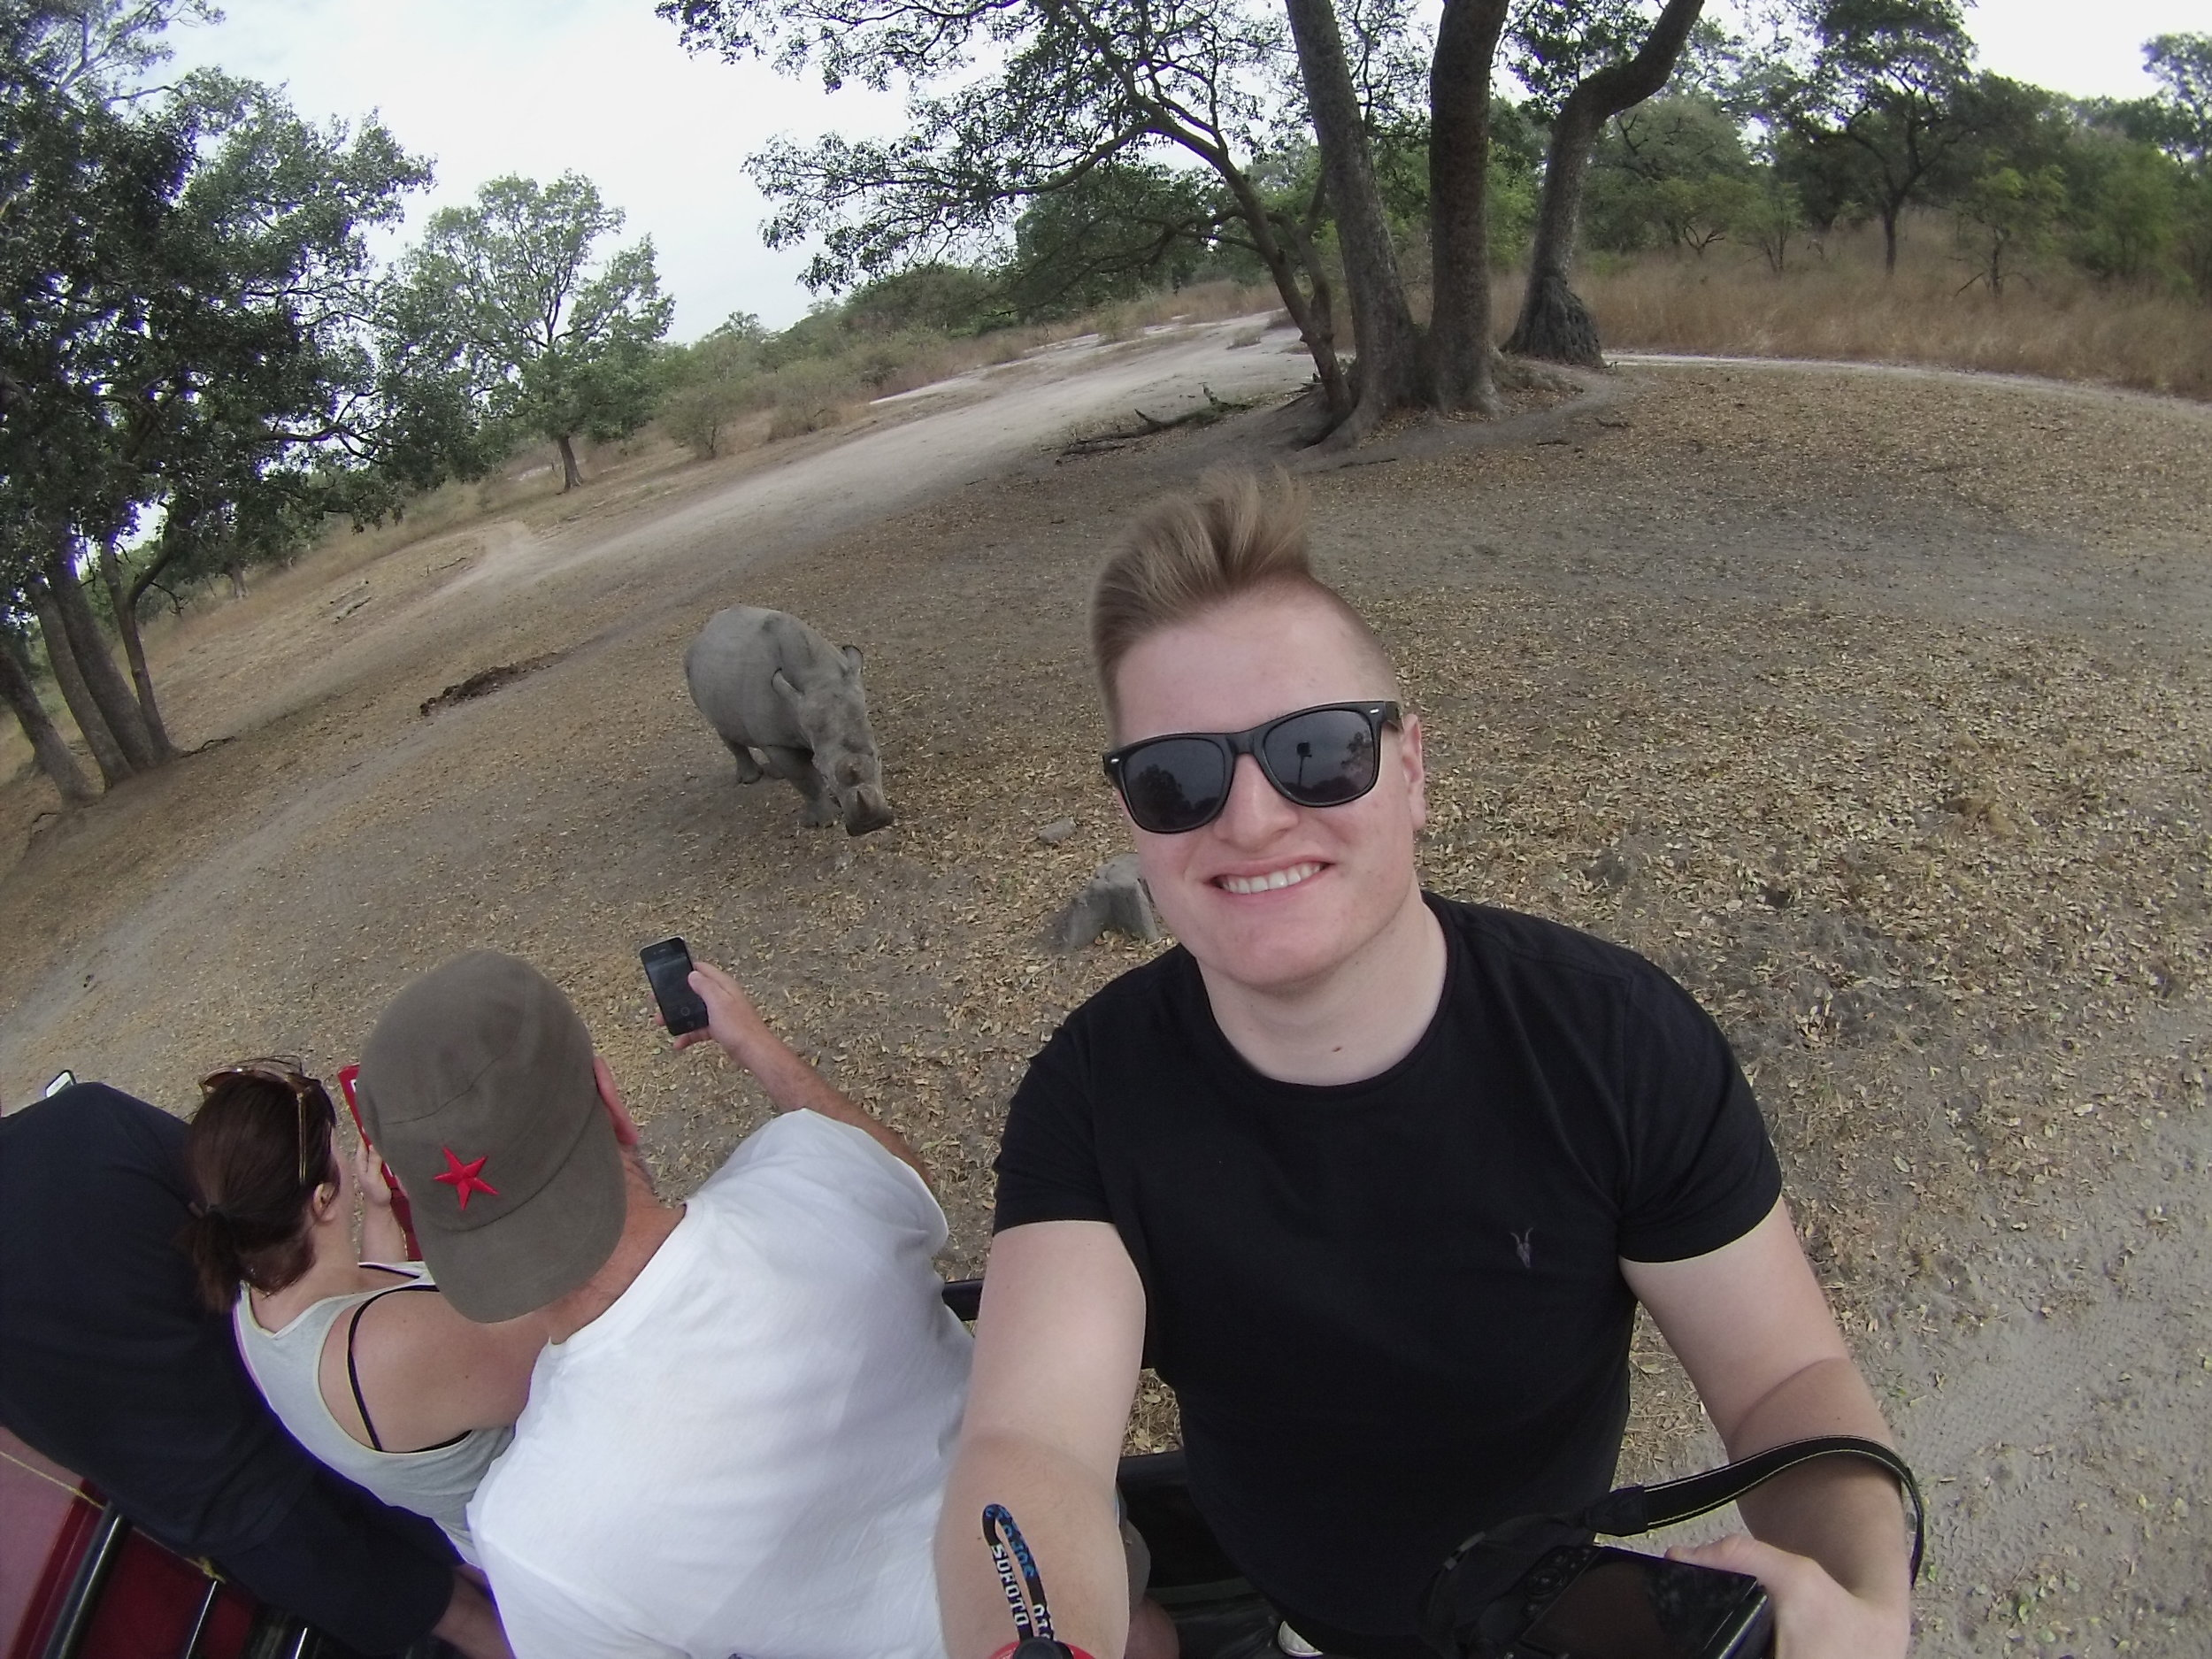 Getting a selfie with a rhino at Fathala Game Reserve in Senegal.